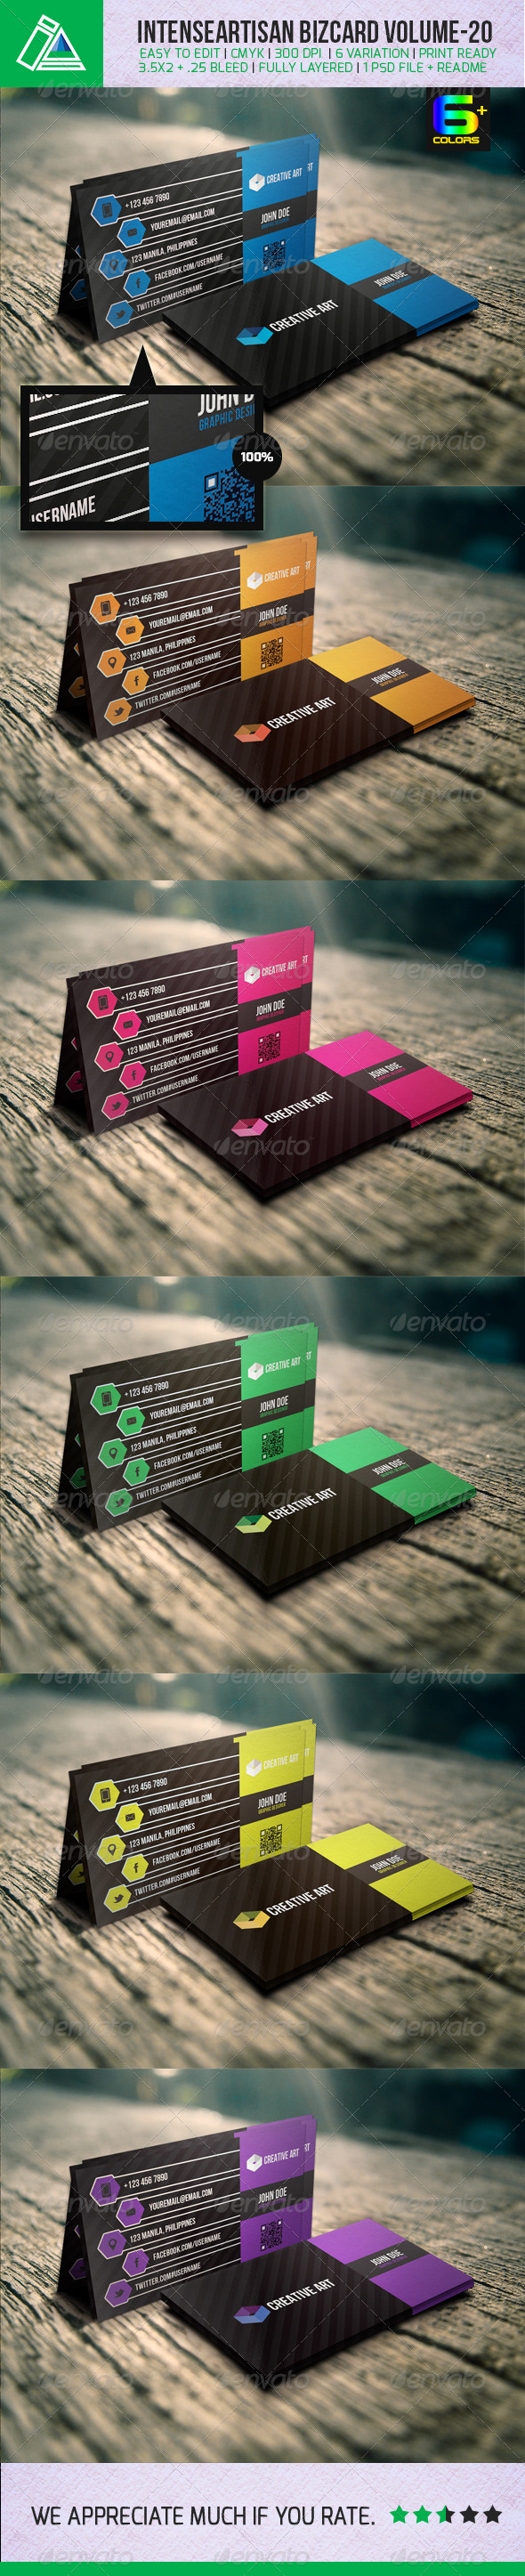 IntenseArtisan Creative Business Card Vol-20 - Creative Business Cards